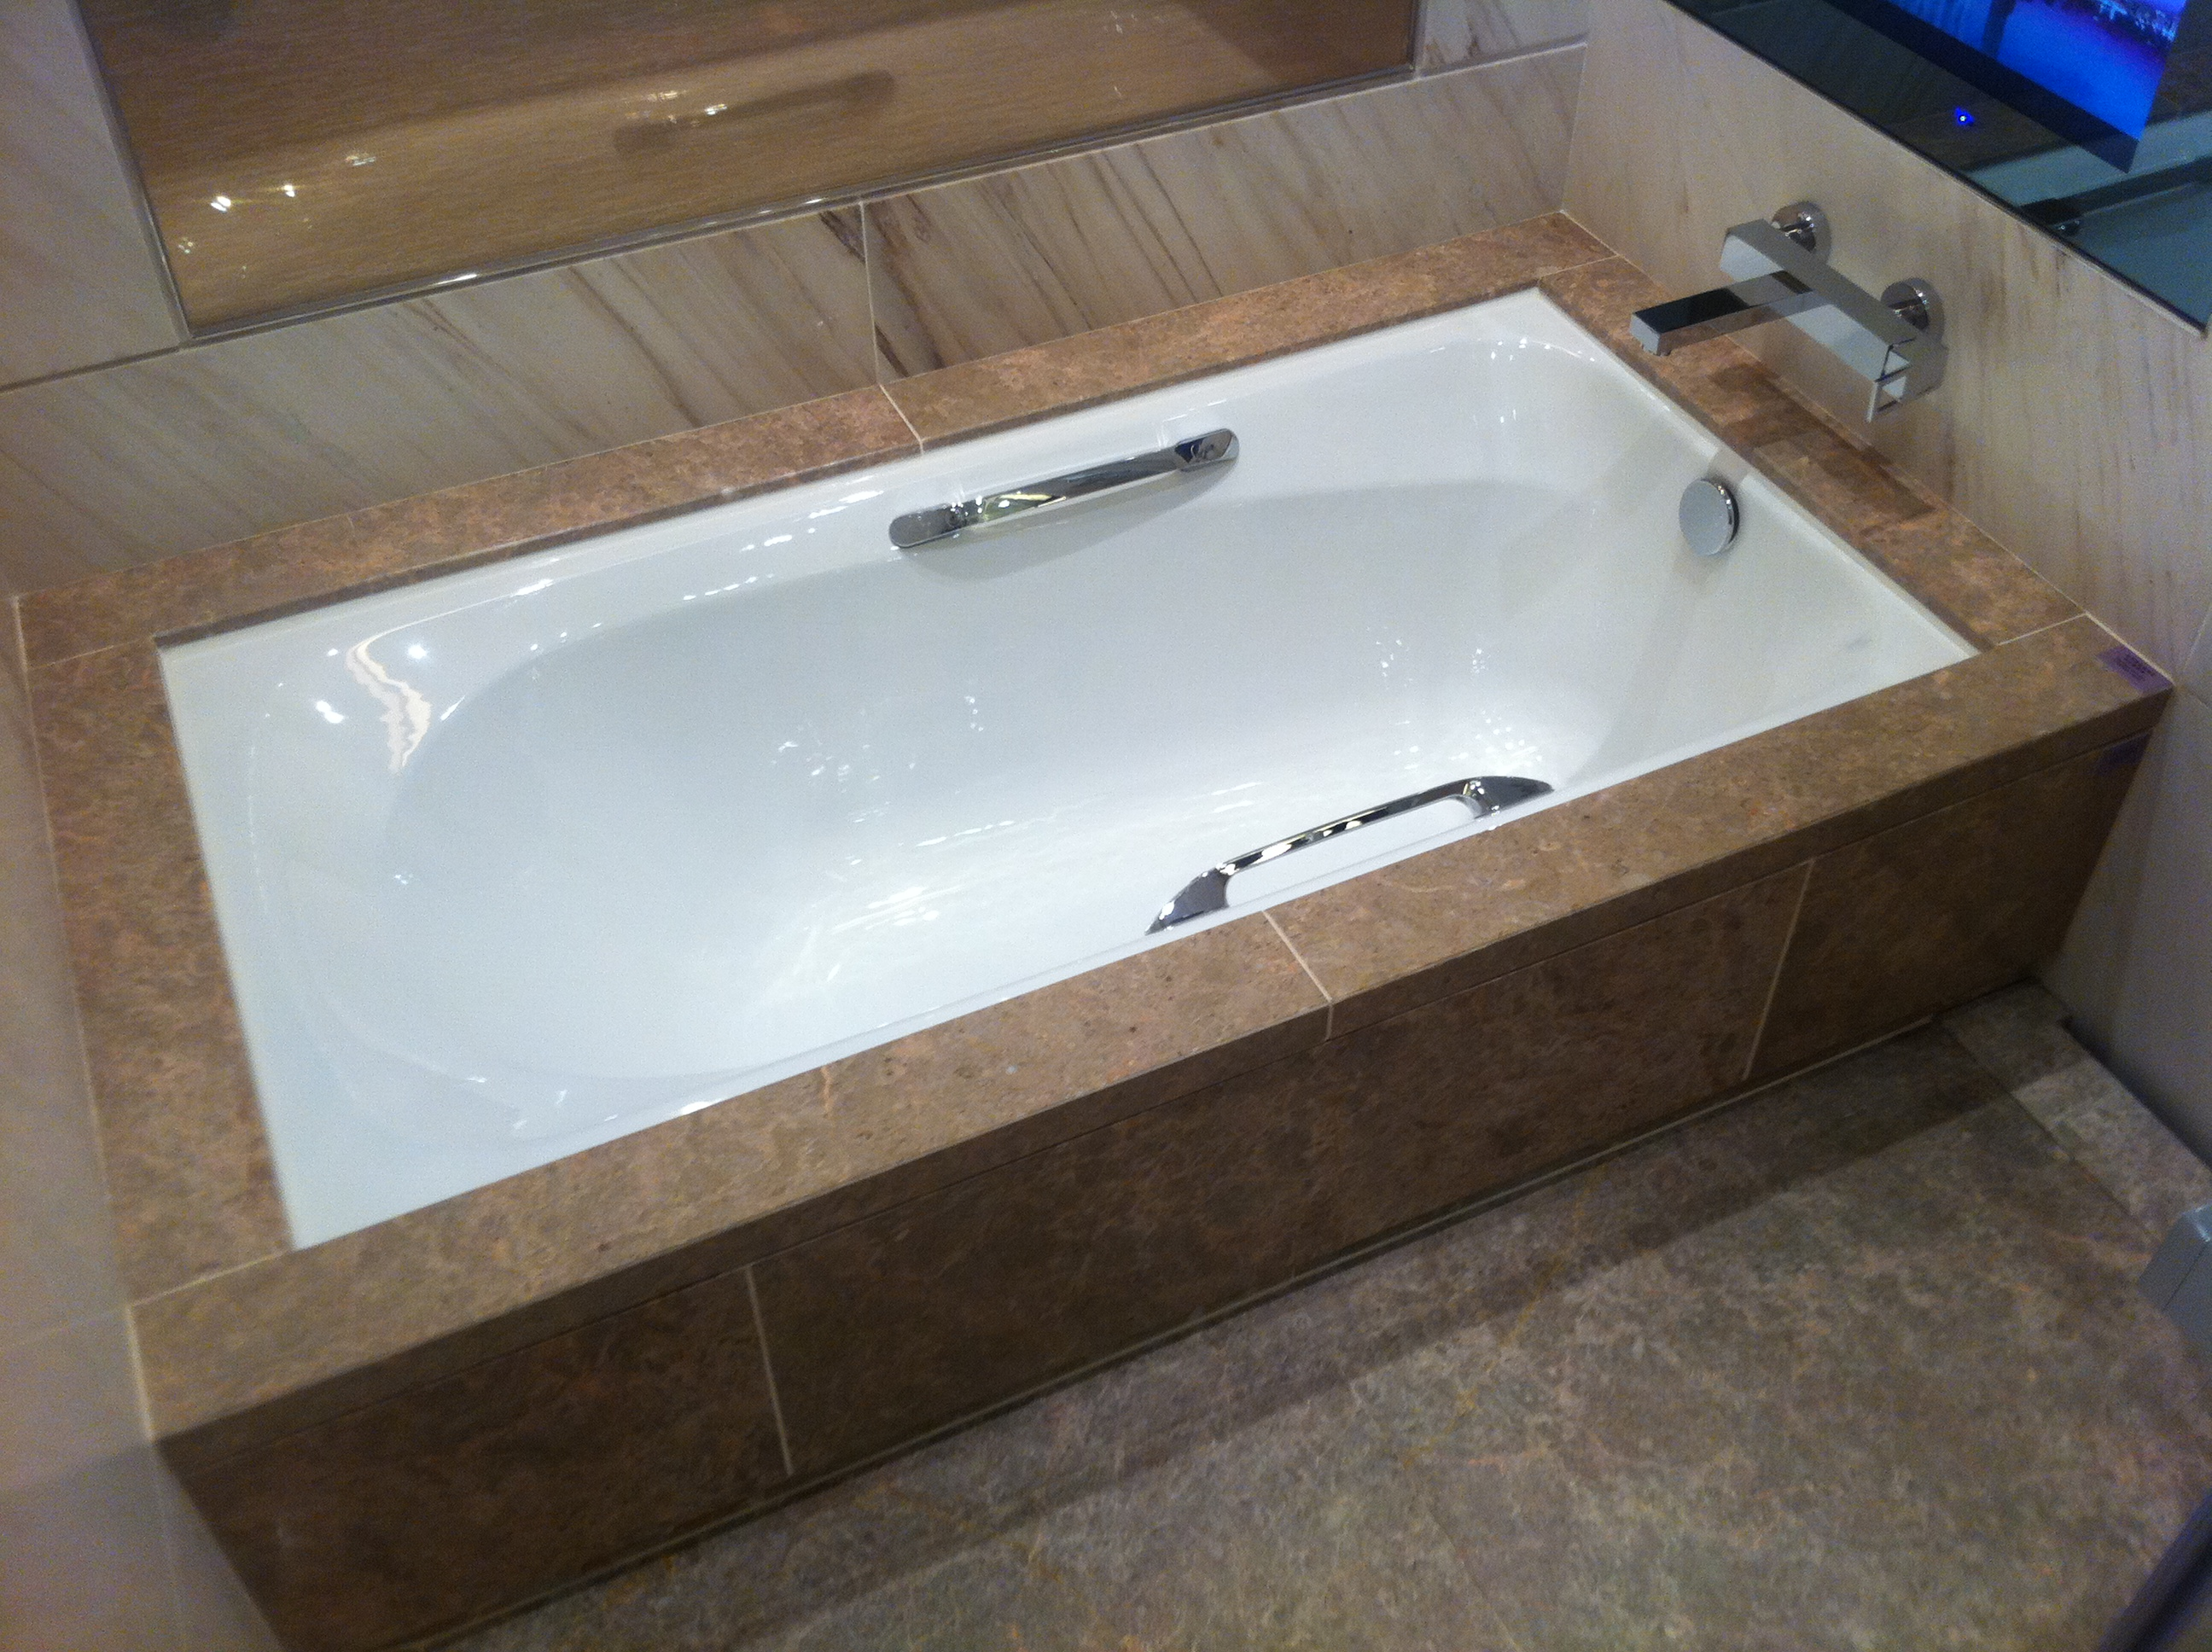 Spot repair vs full refinishing seattle bathtub guy wa for Soaking tub vs bathtub